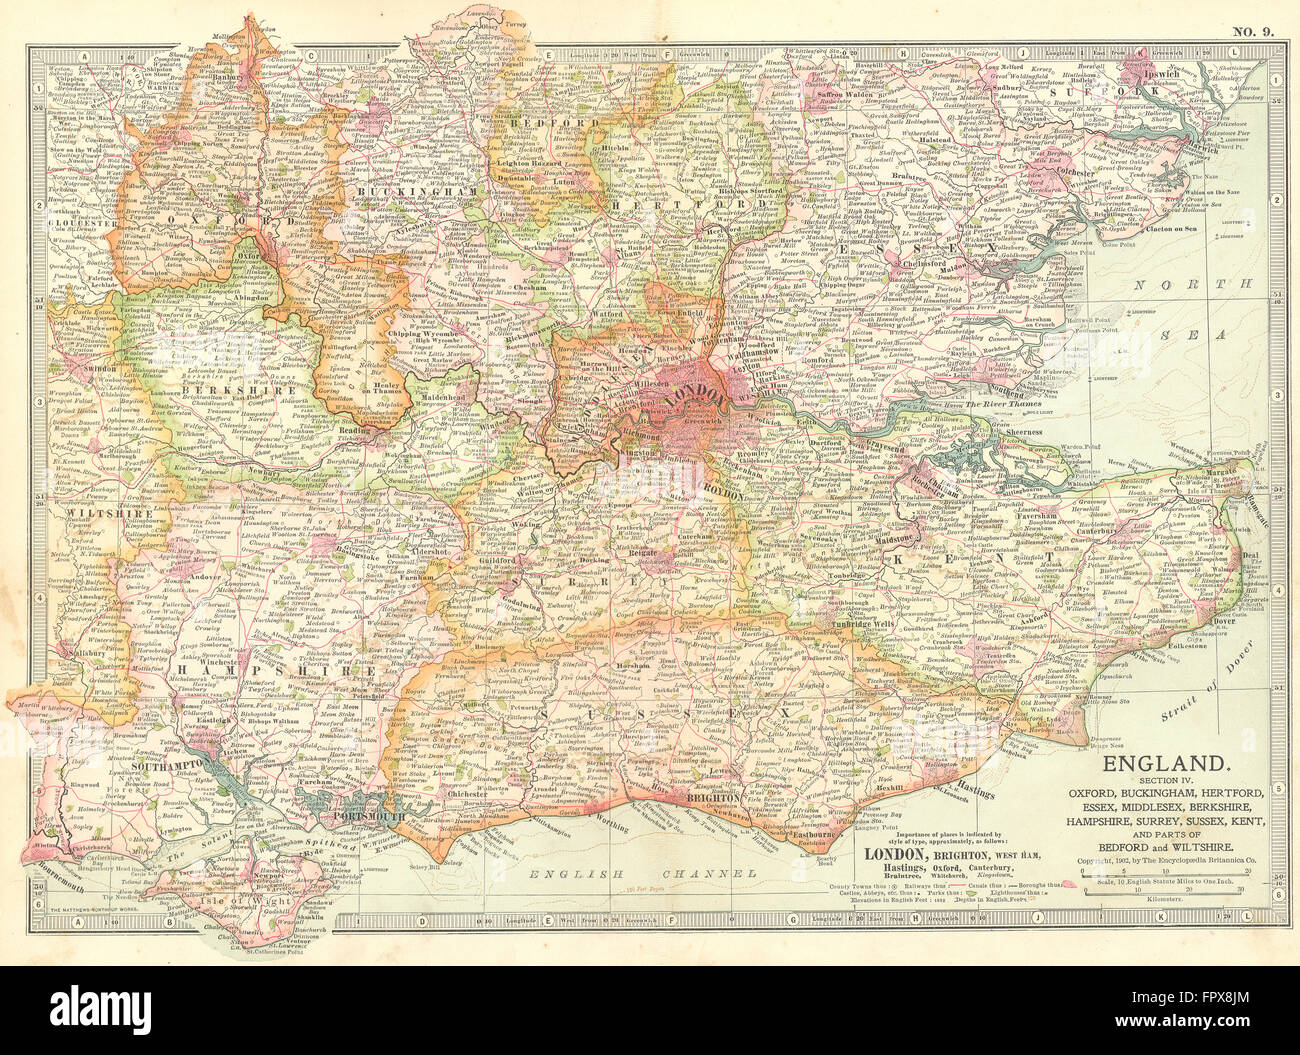 Se England Map.Se England Home Counties Inc Bucks Essex Middx 1903 Antique Map